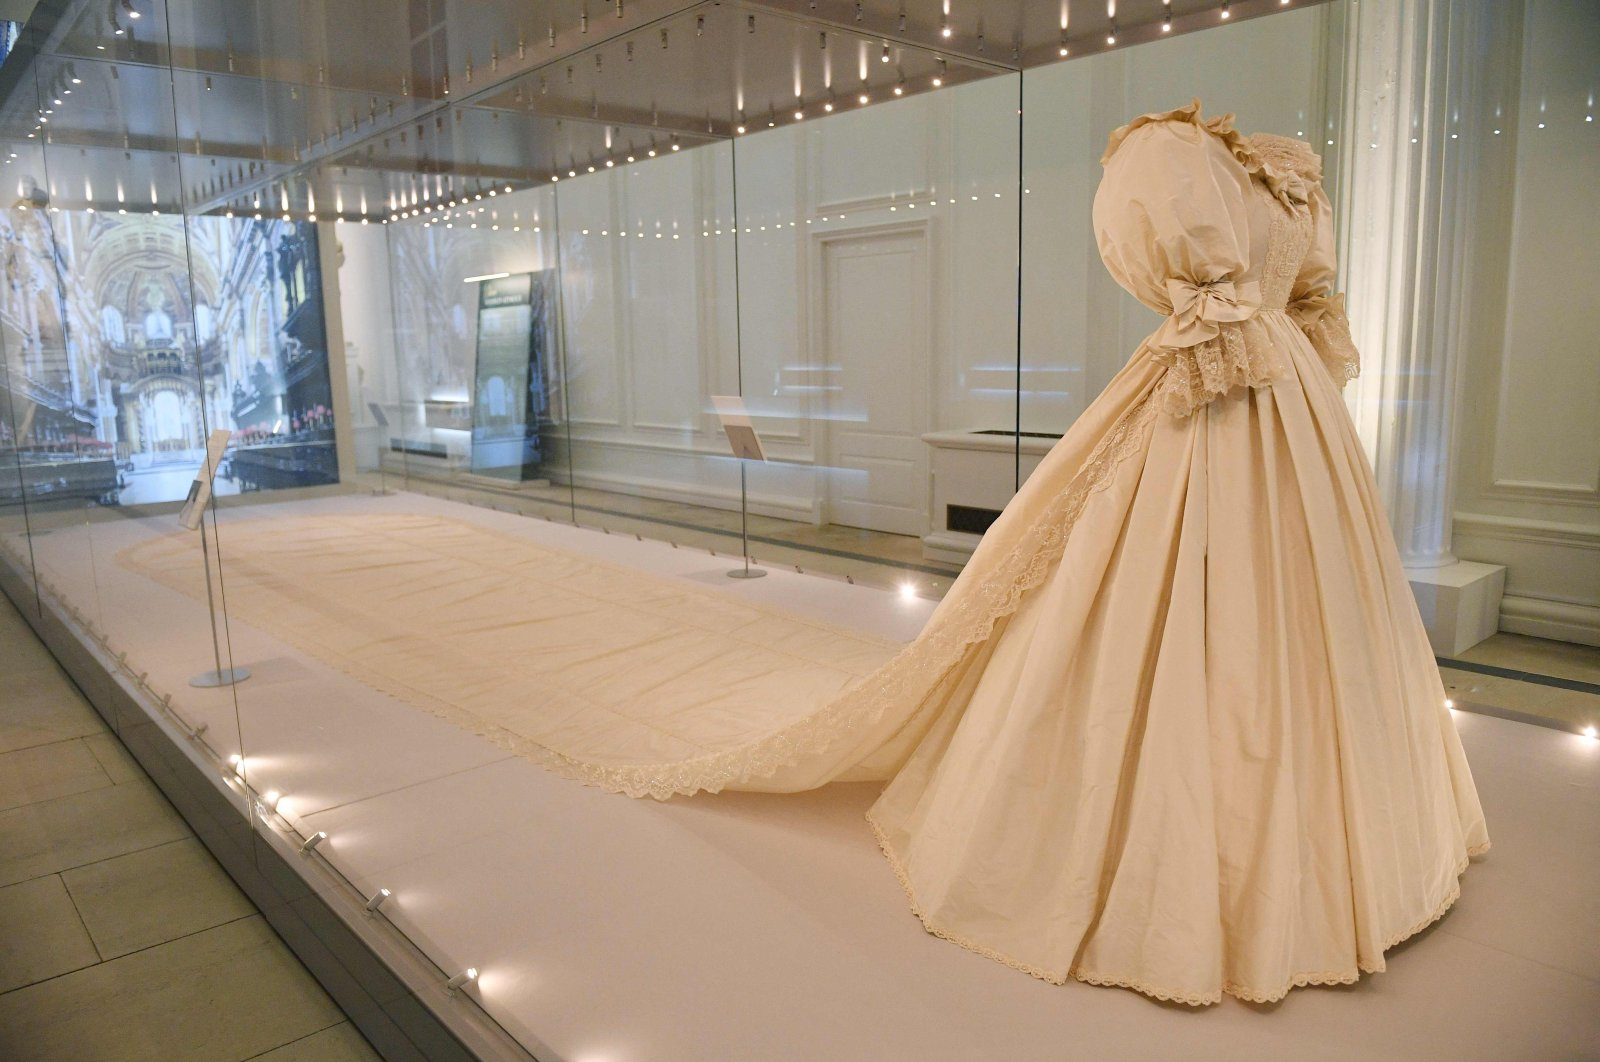 The wedding dress of Diana, Princess of Wales is seen on display at an exhibition entitled 'Royal Style in the Making' at Kensington Palace in London on June 2, 2021. (AFP Photo)